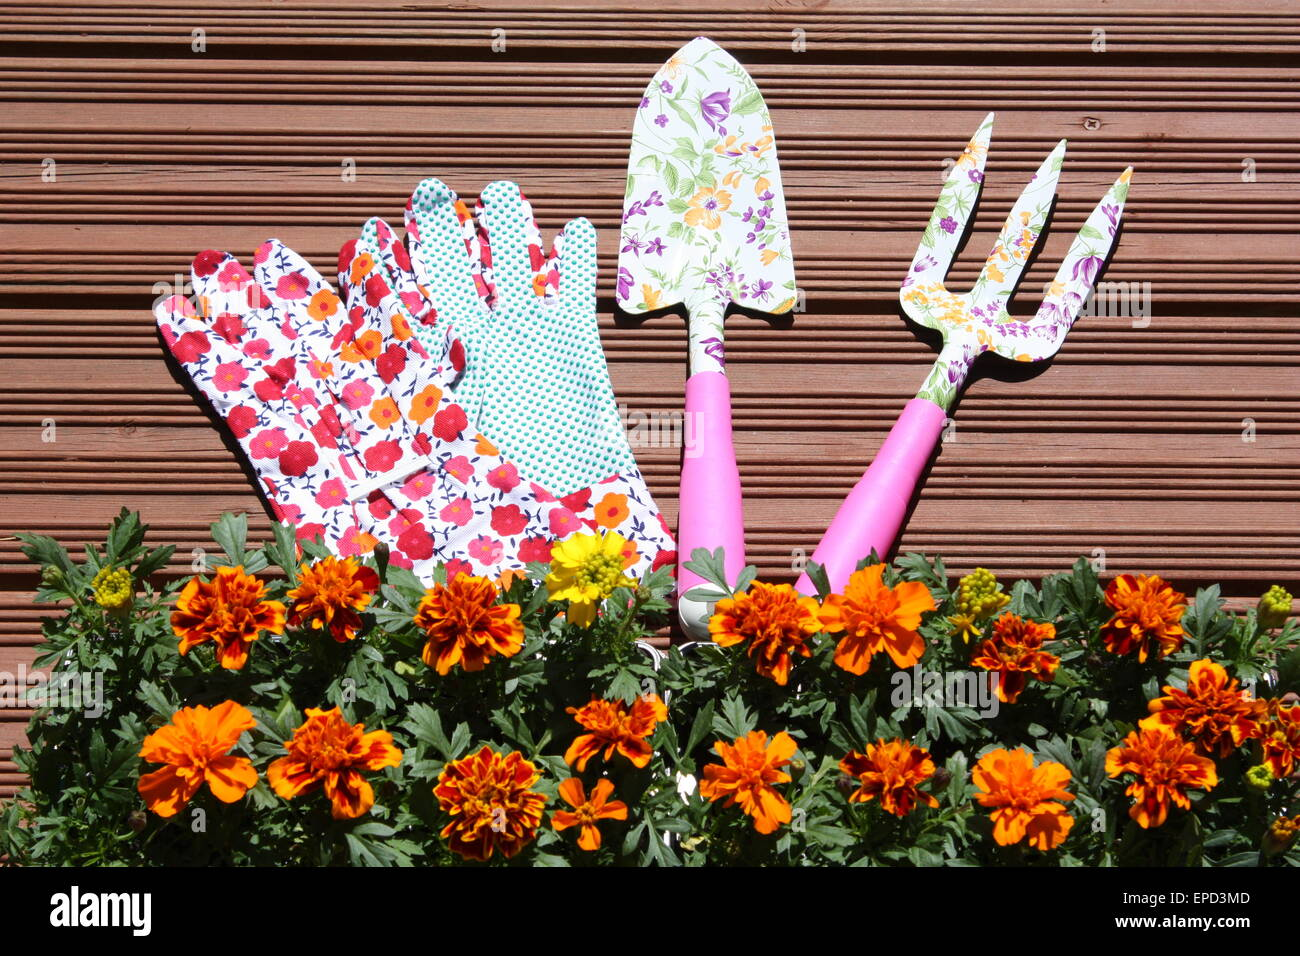 Marigold plants with gloves and garden tools Stock Photo